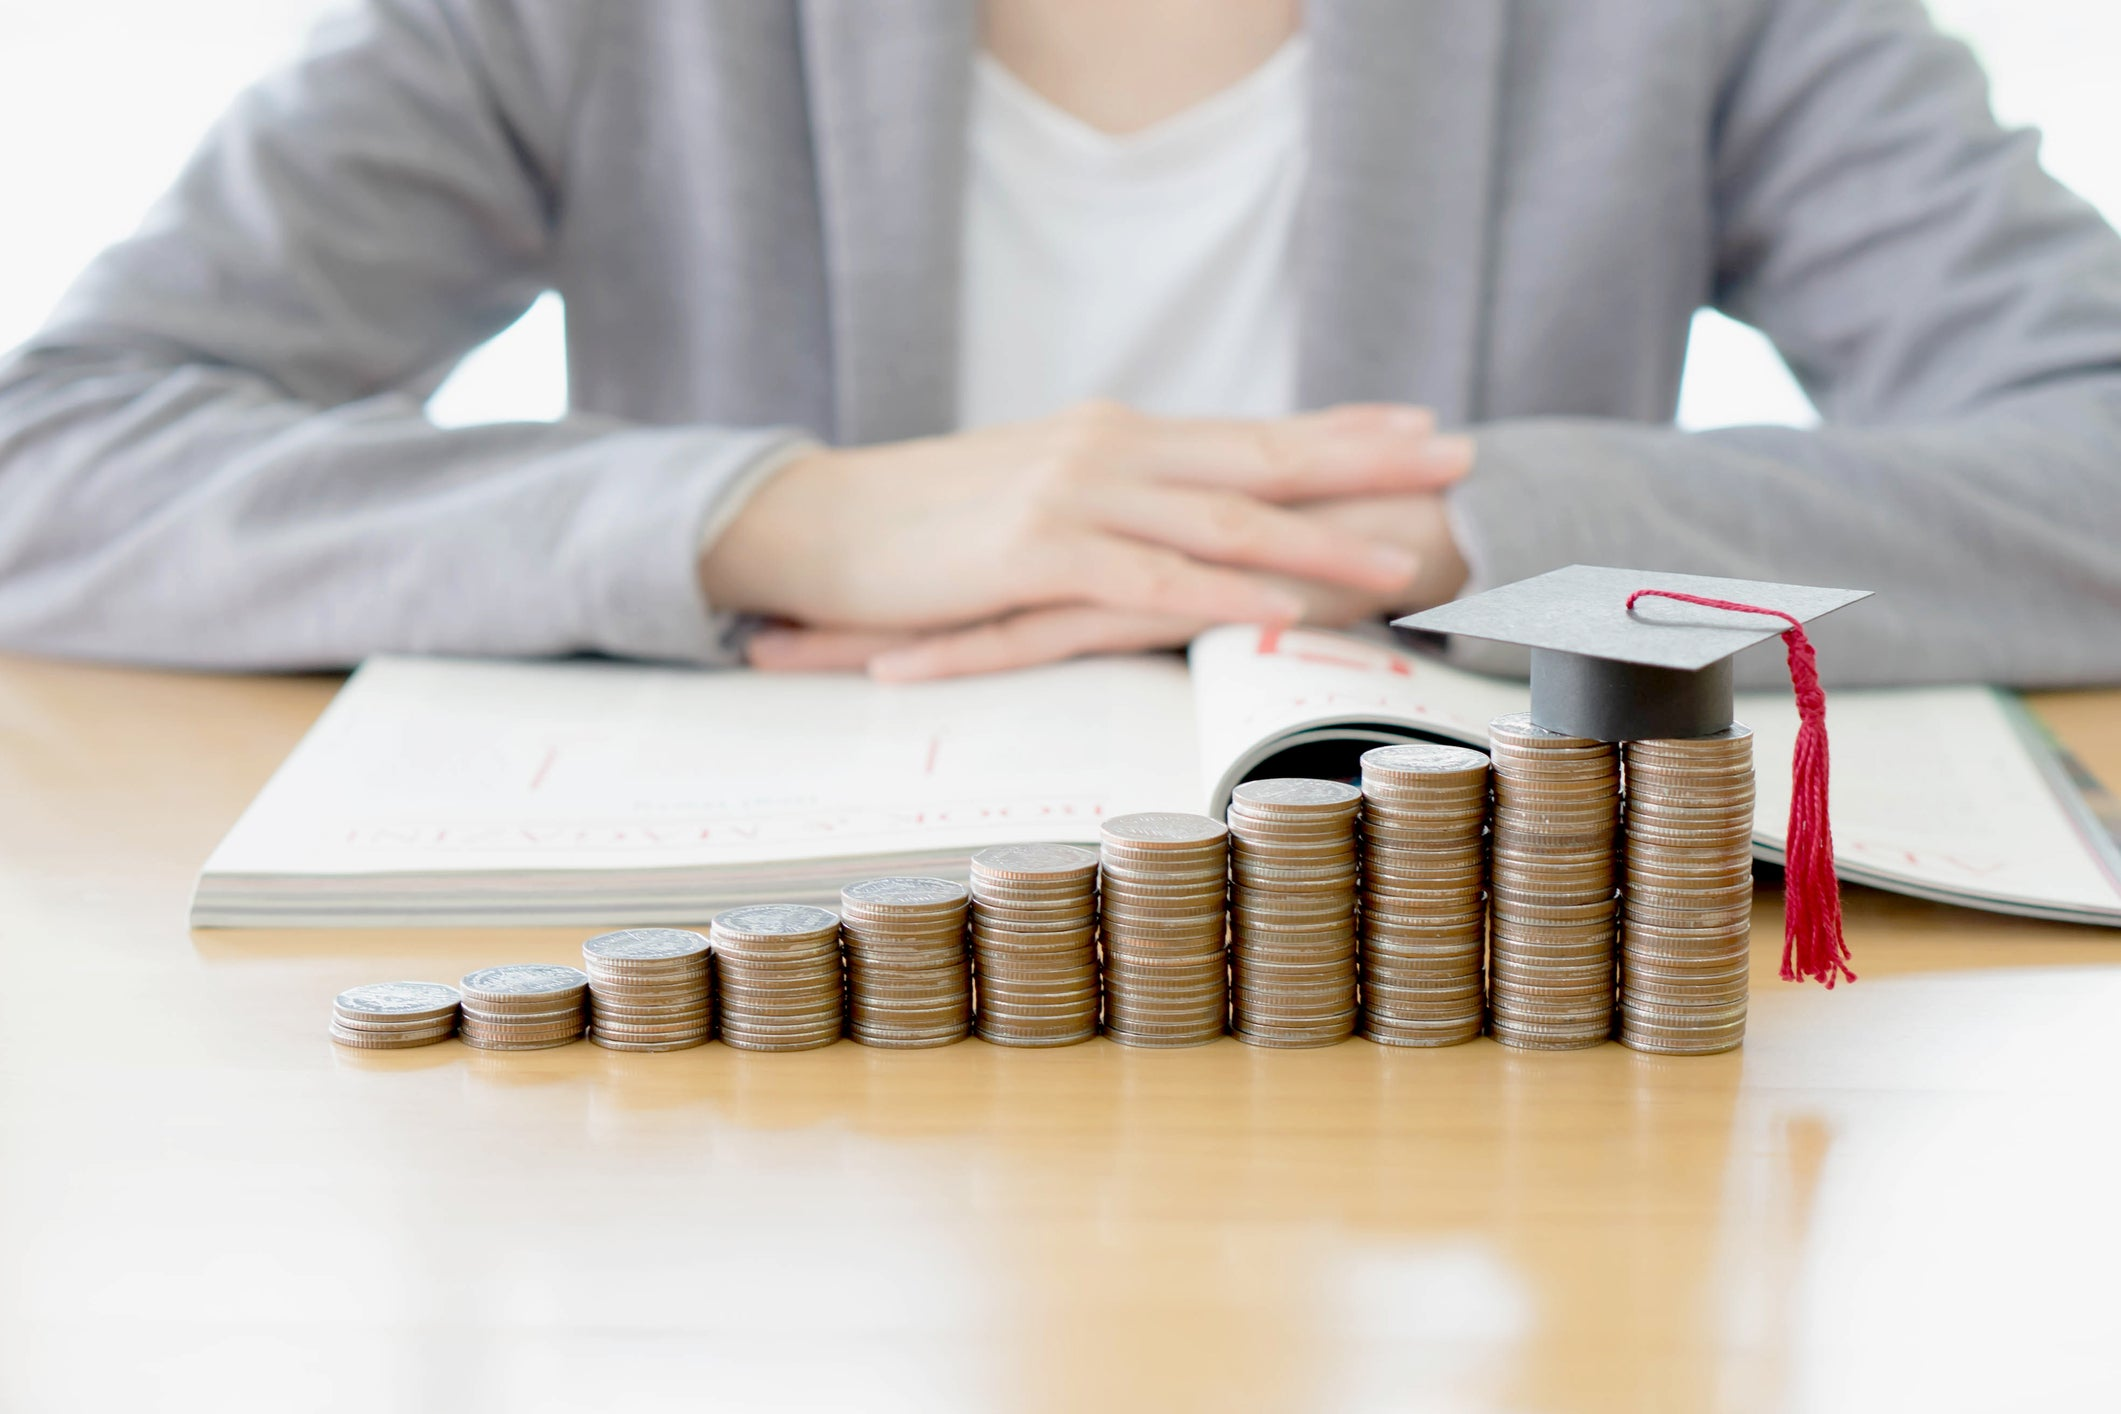 woman sitting behind stacks of coins with a mortarboard on top.